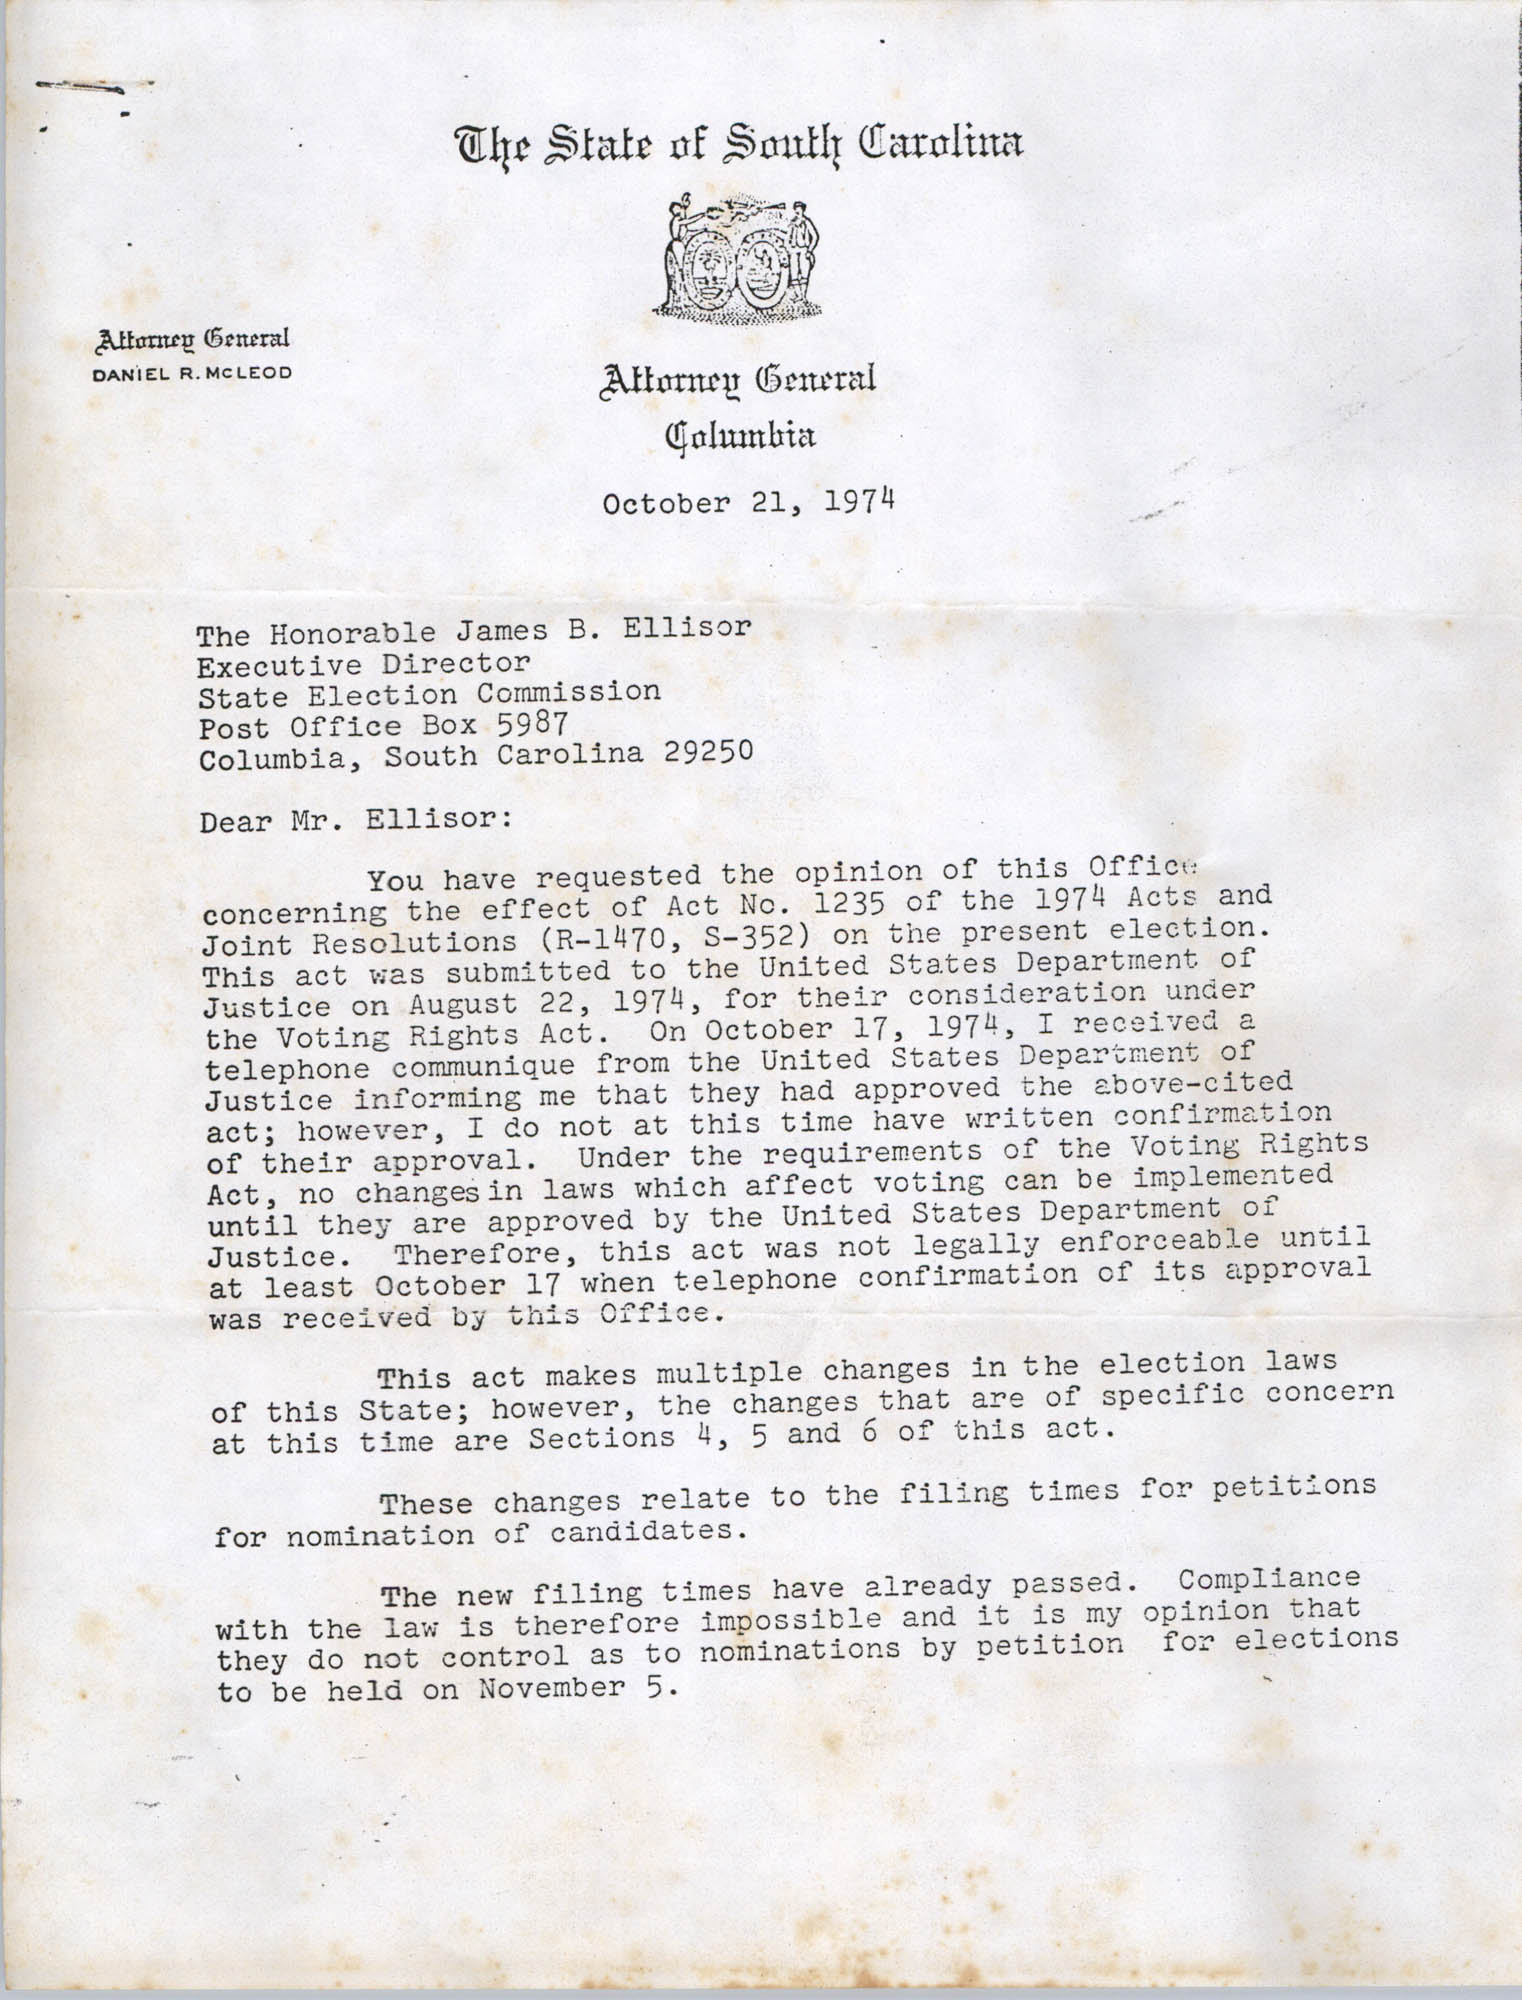 Letter from Treva Ashworth to Bernice Robinson, October 31, 1974